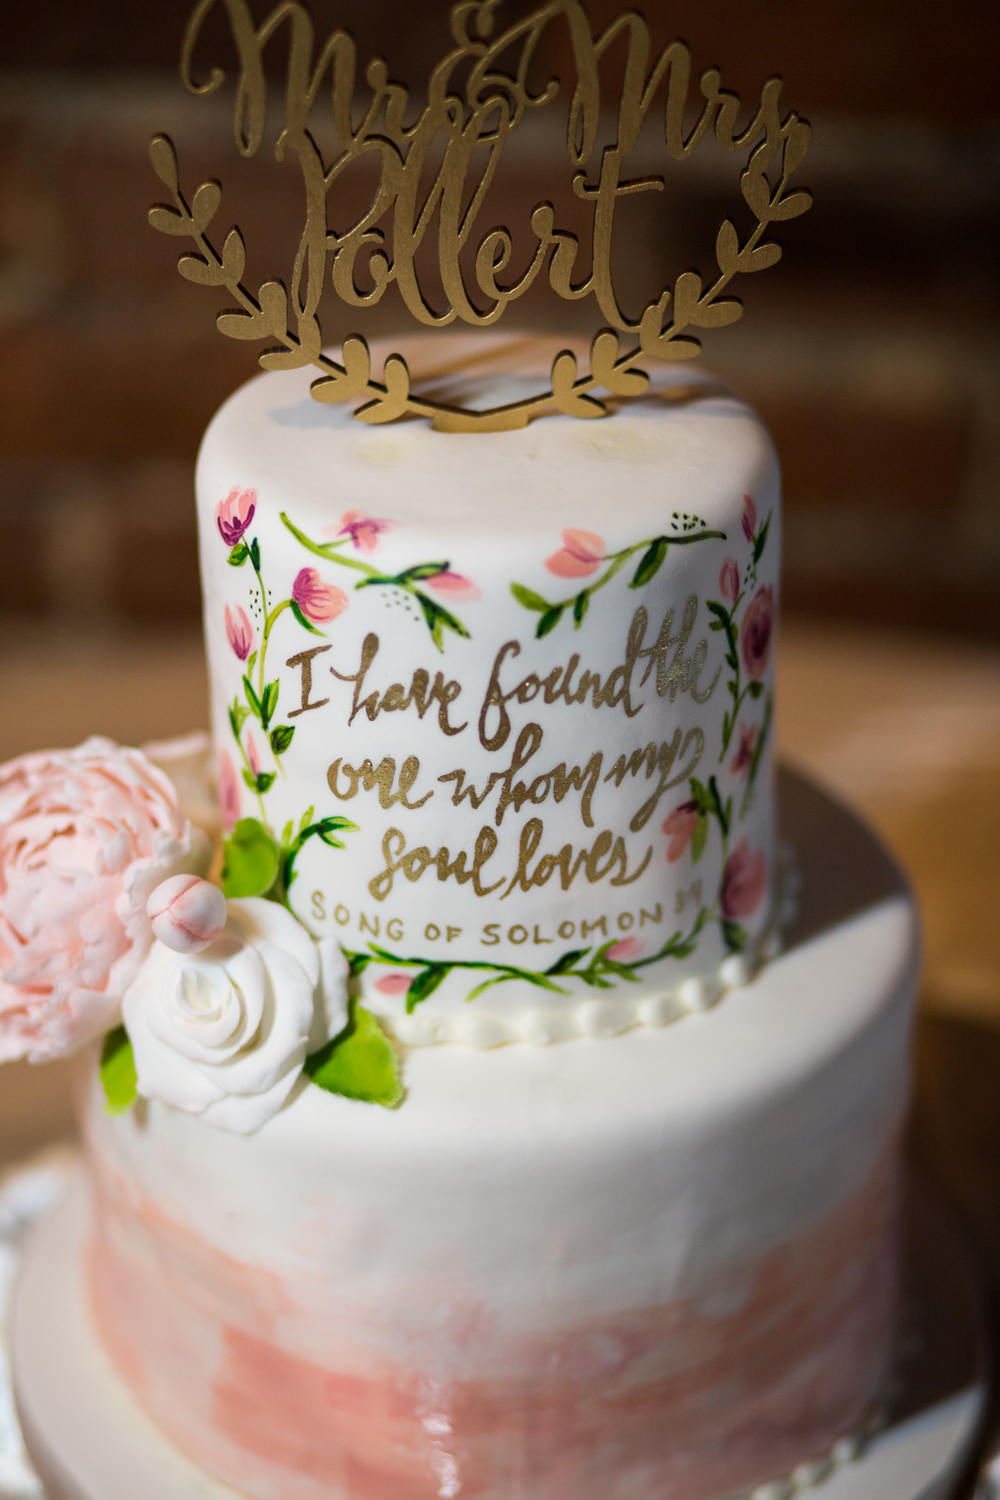 Song of Solomon displayed so beautifully on their wedding cake by  Nashville Sweets.